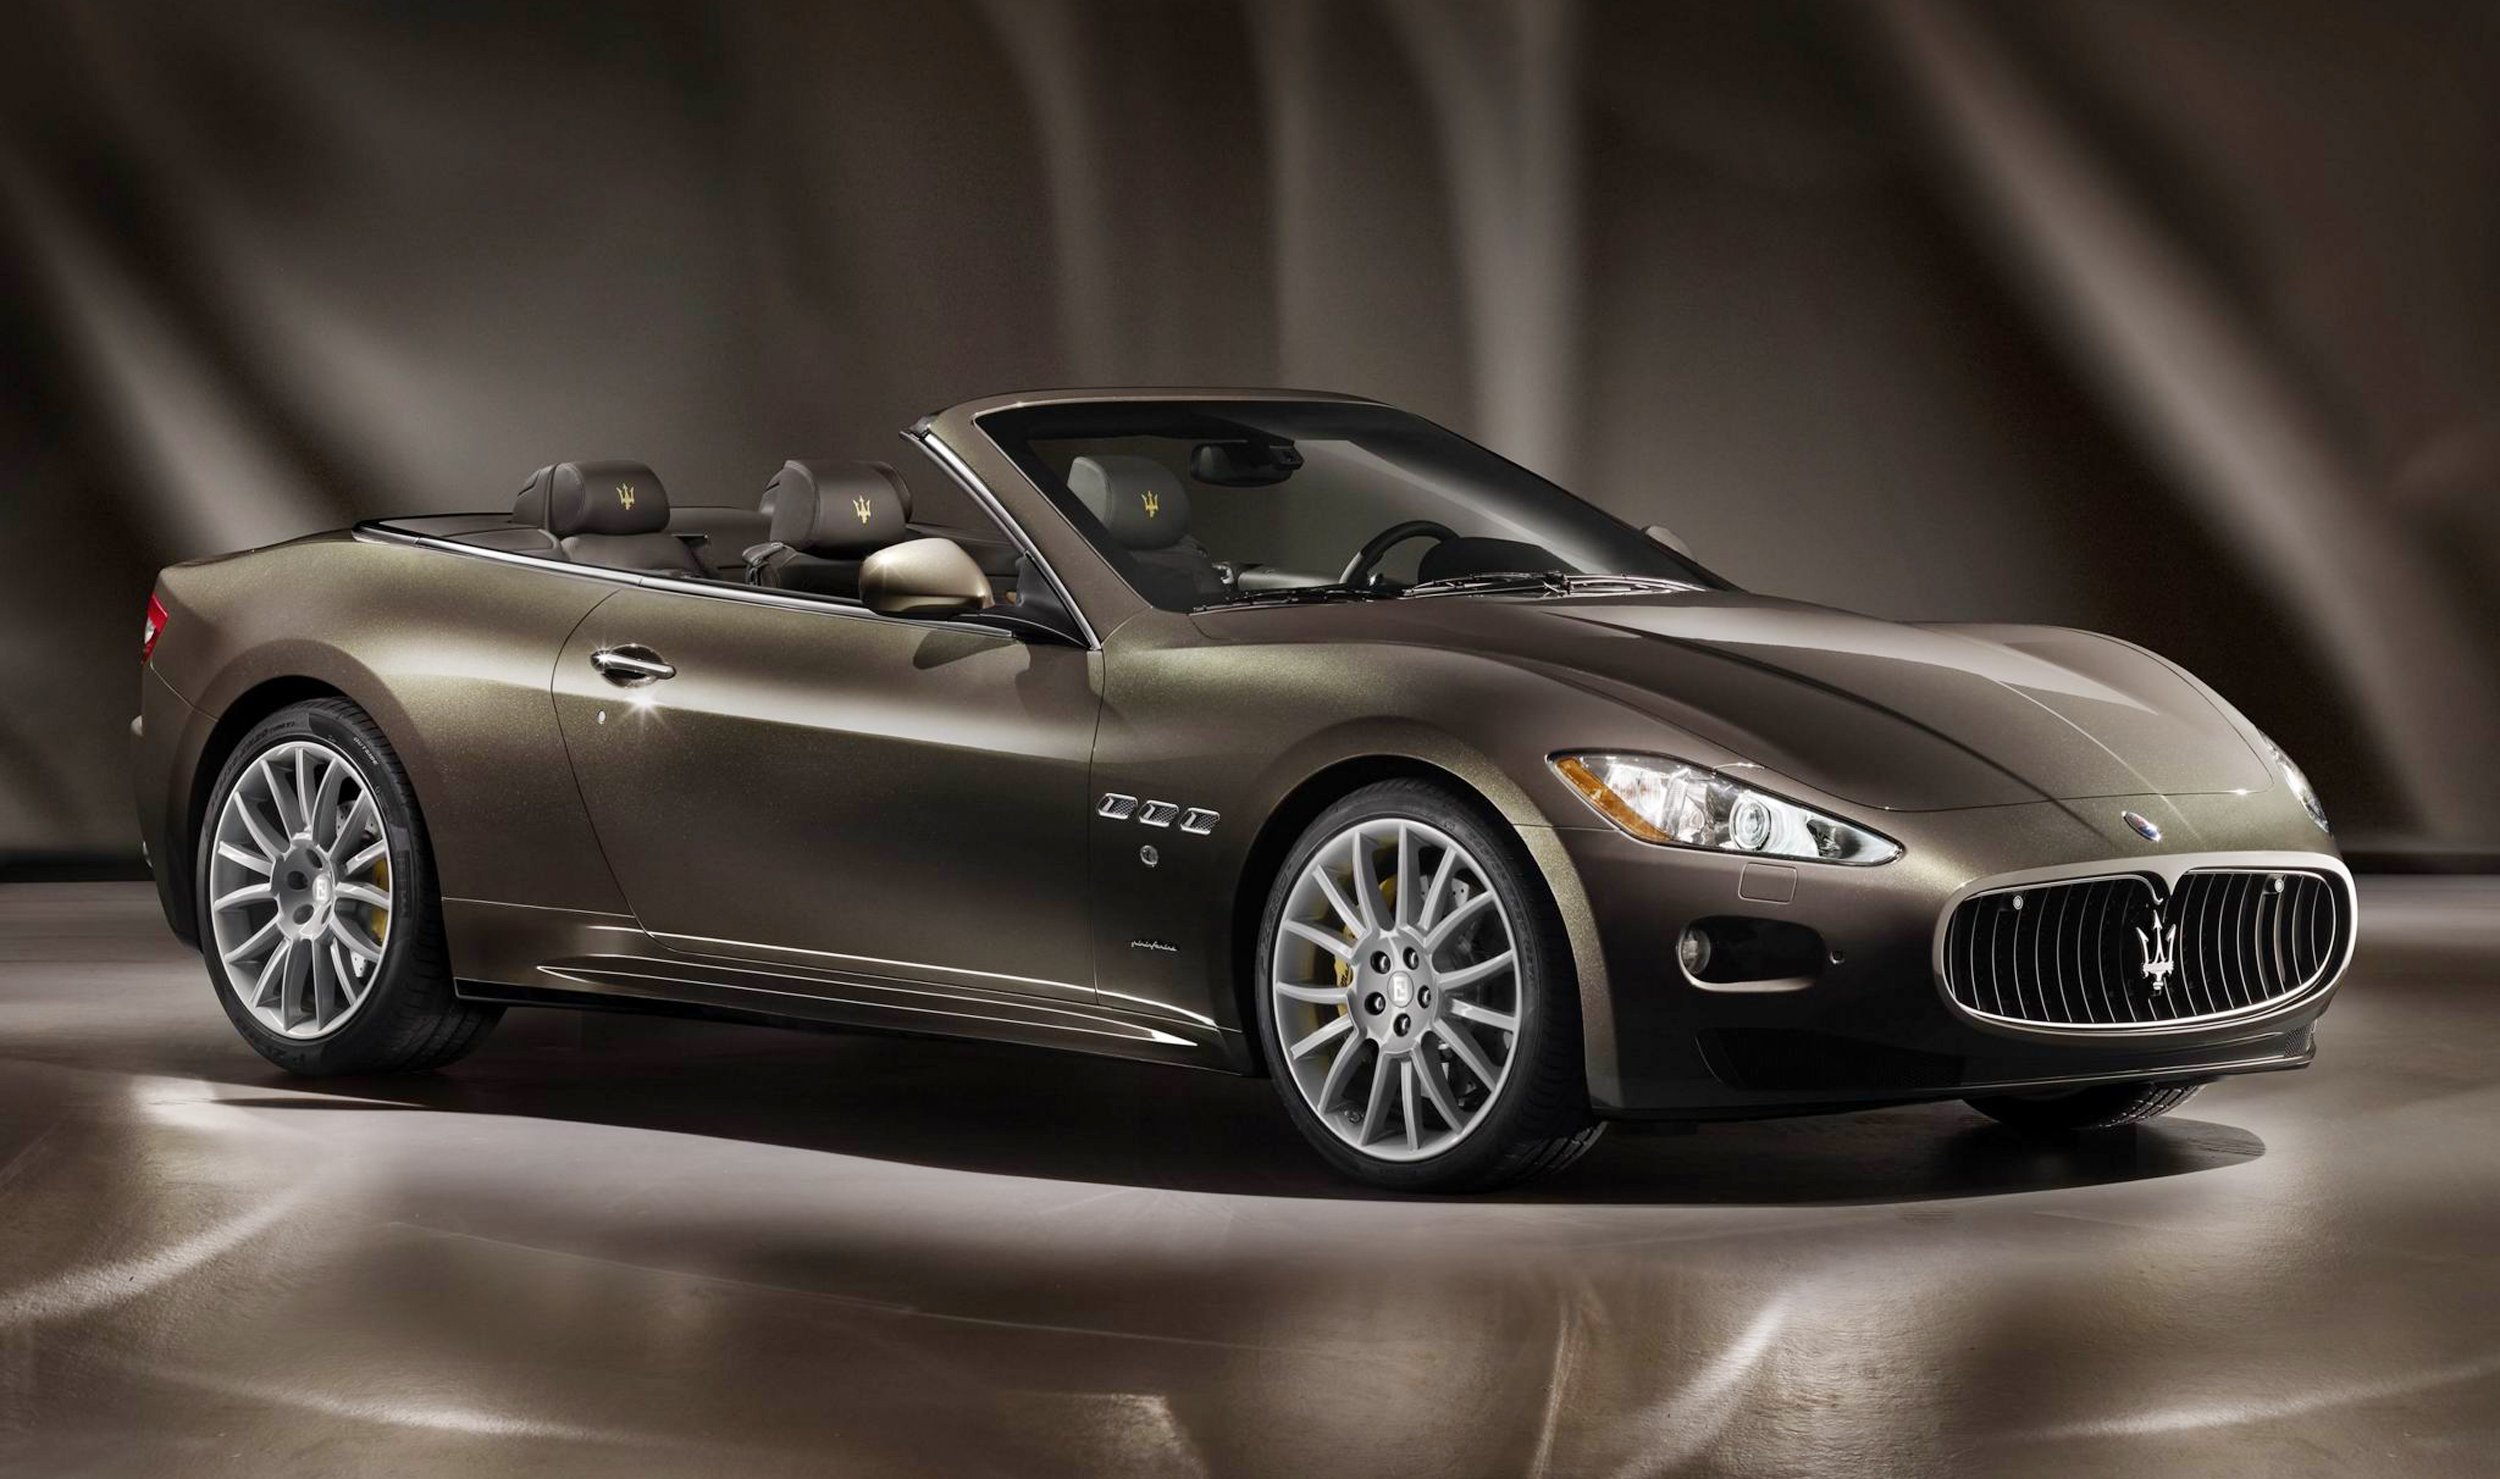 Maserati GranCabrio Fendi 2012 Maserati GranCabrio Fendi   Meant for Innovation in Terms of Curb Appealing